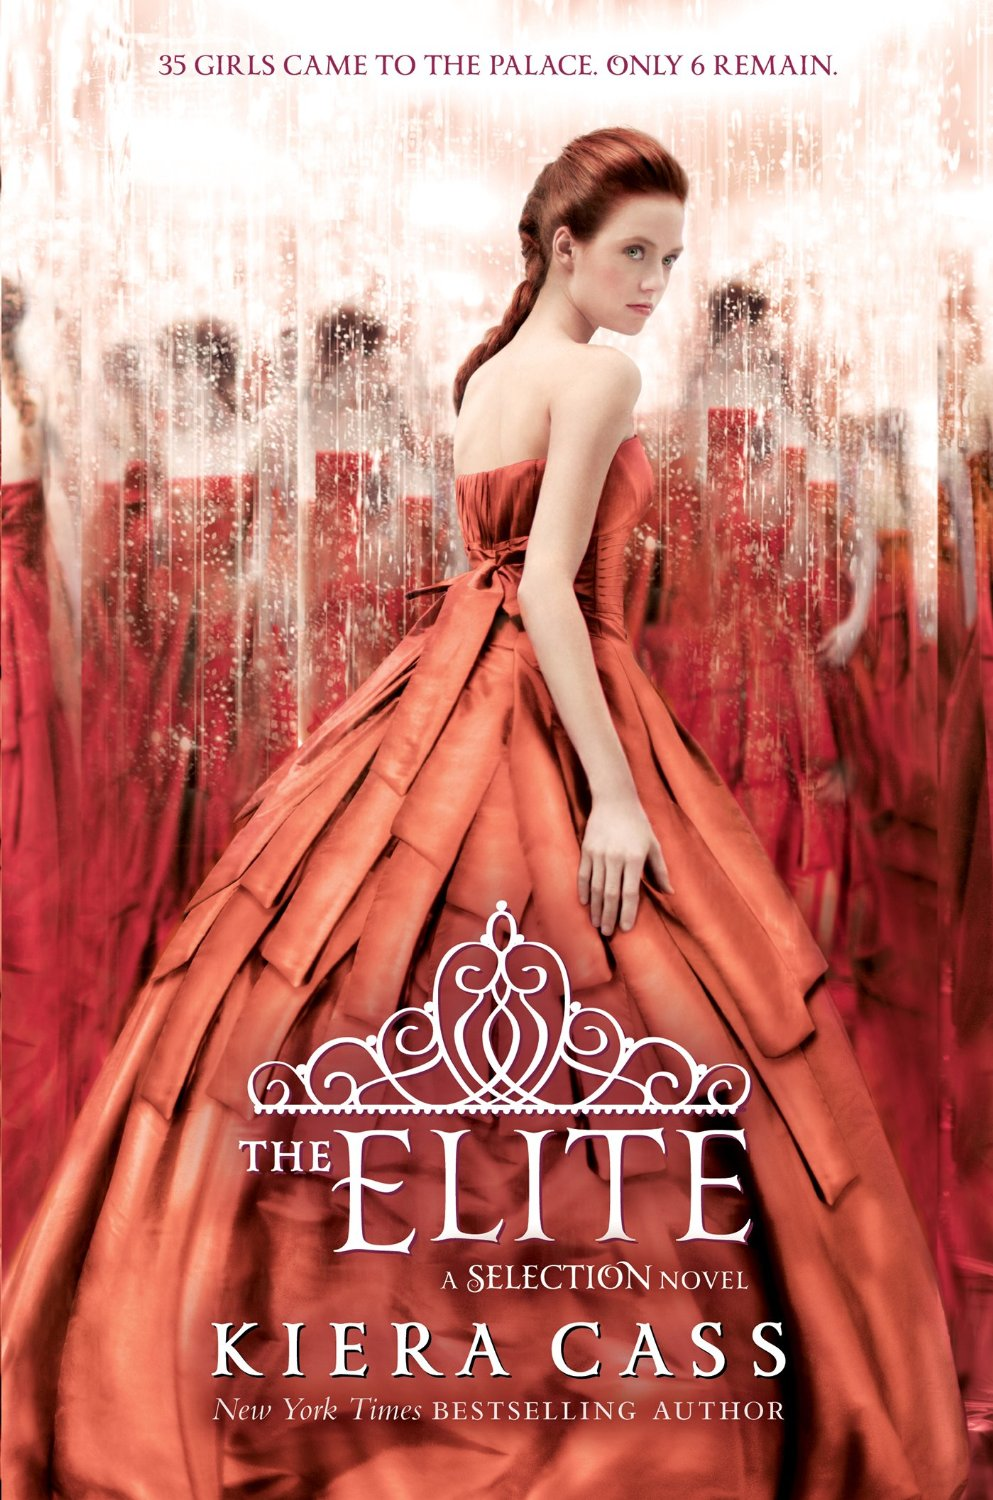 Couverture de ?The elite?